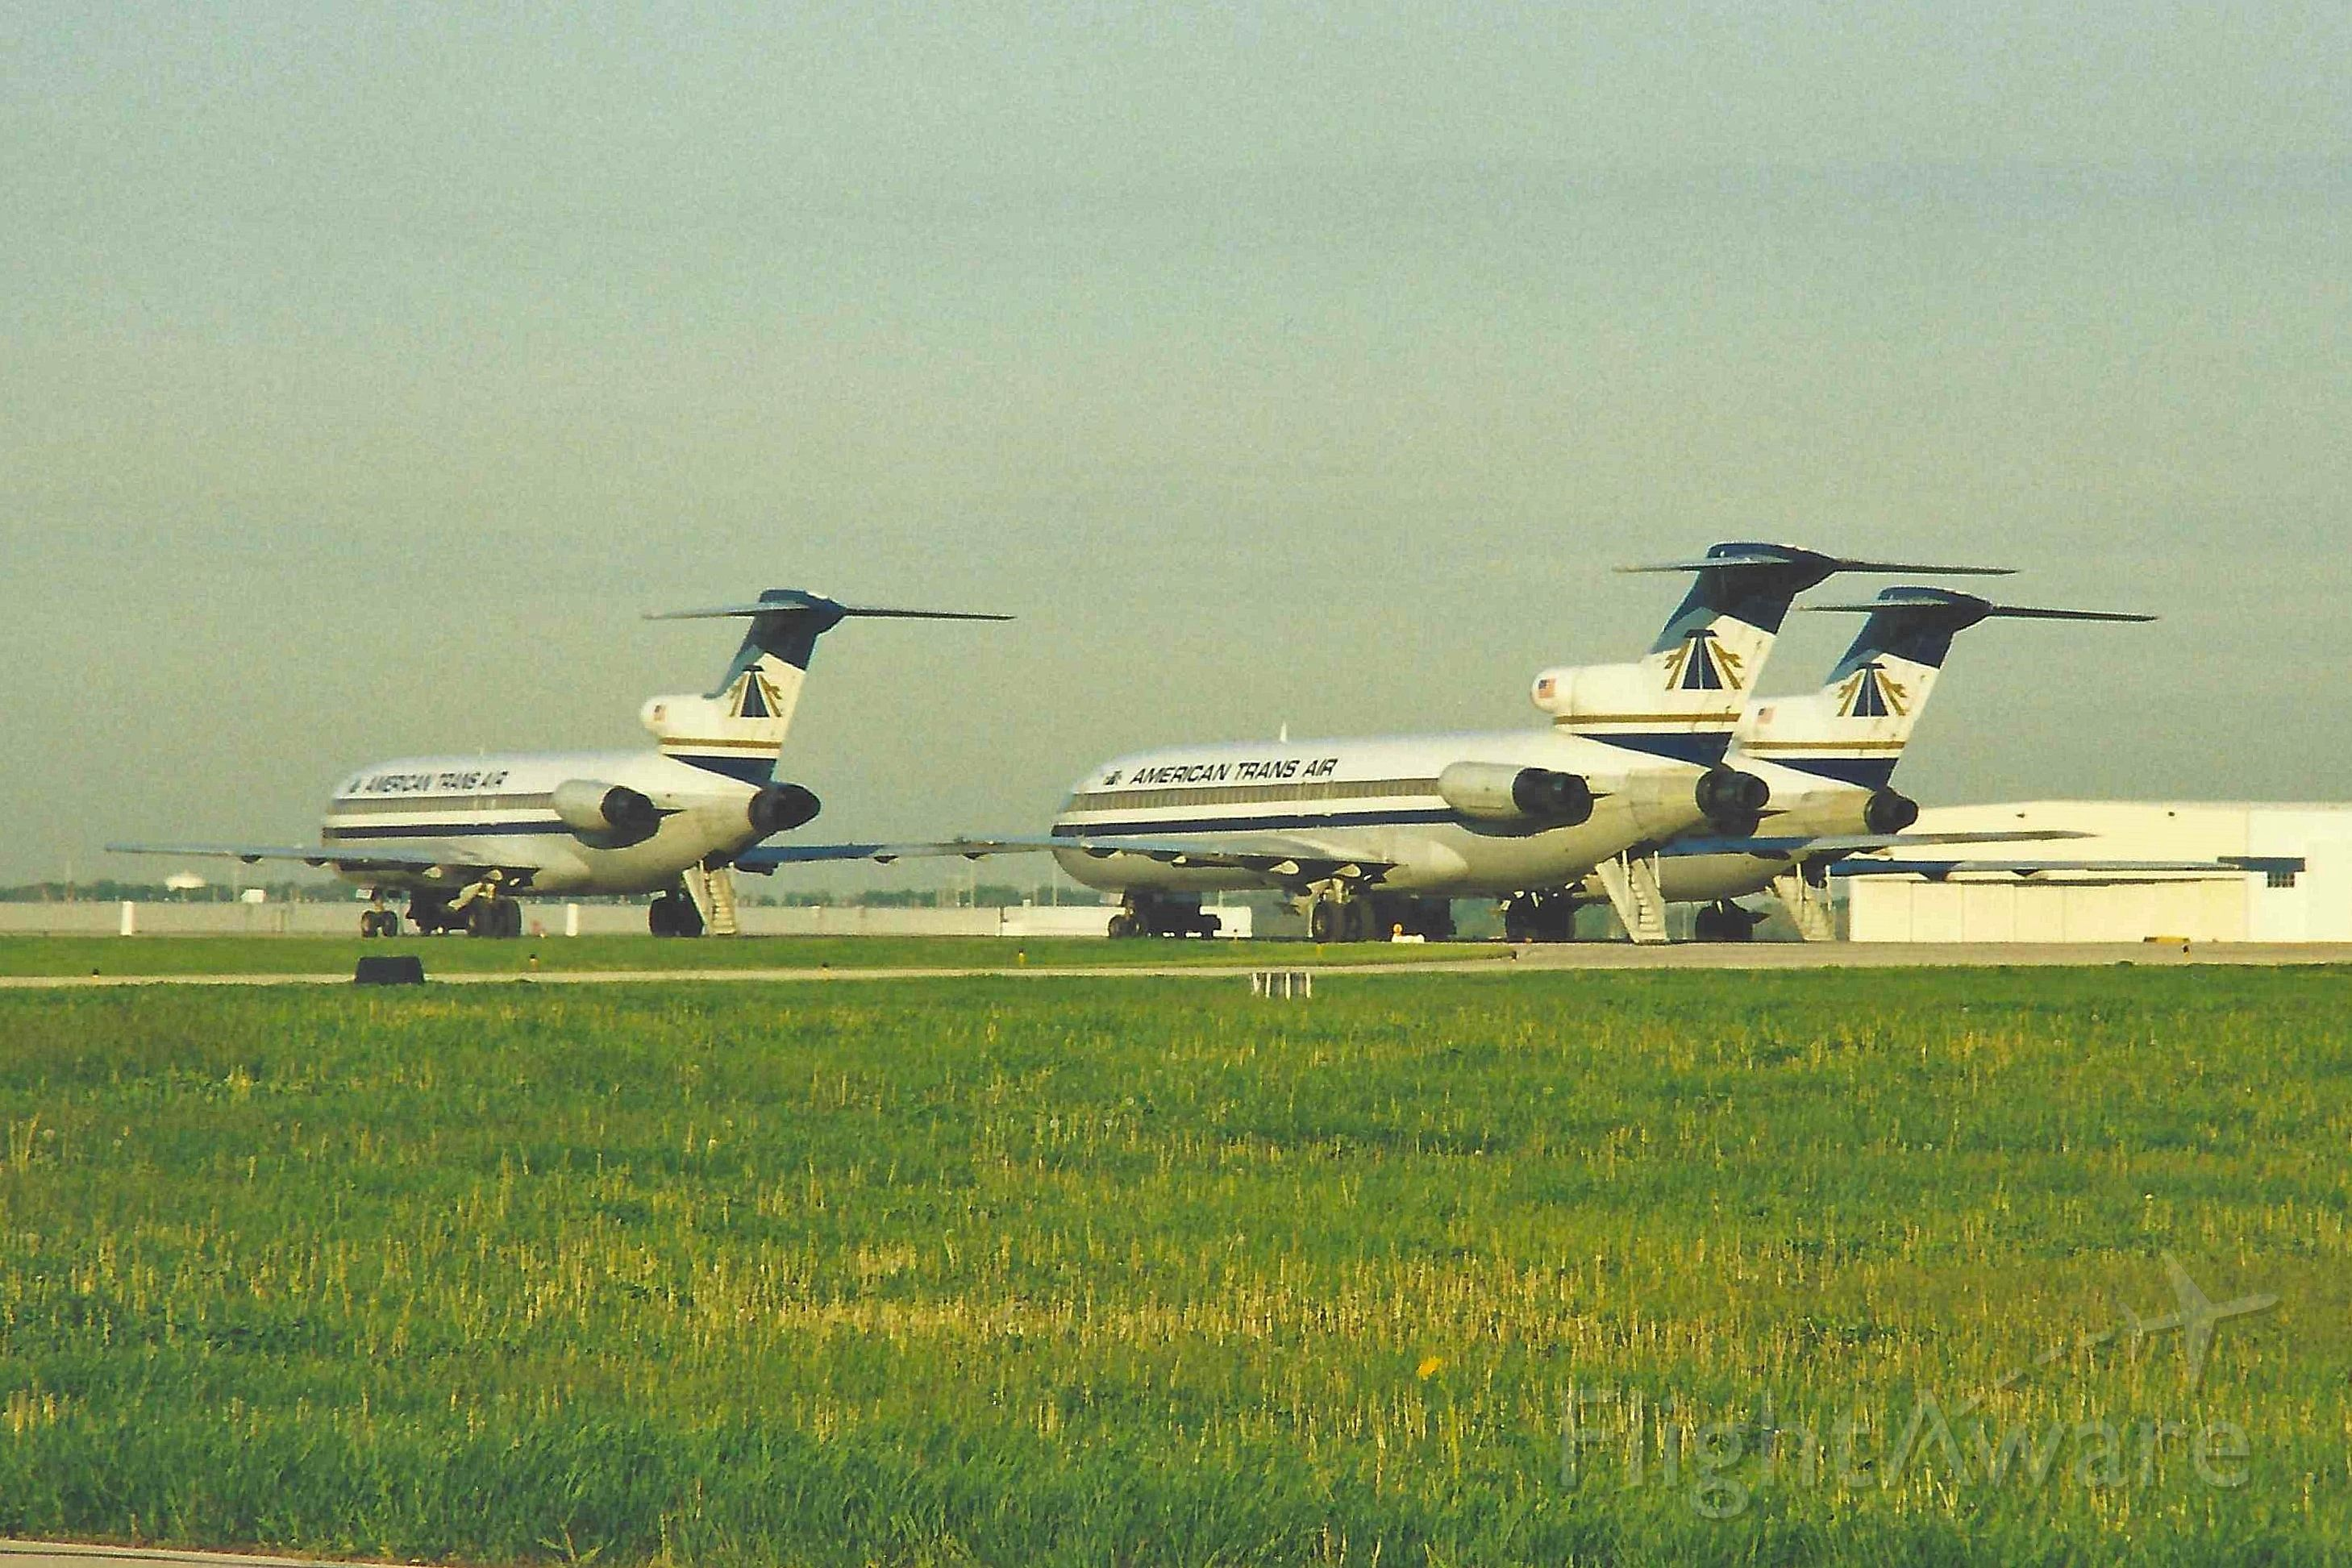 BOEING 727-200 — - Thres' Tri-Holers from back in the day...photo taken mid to late 90's. Scanned from a print.